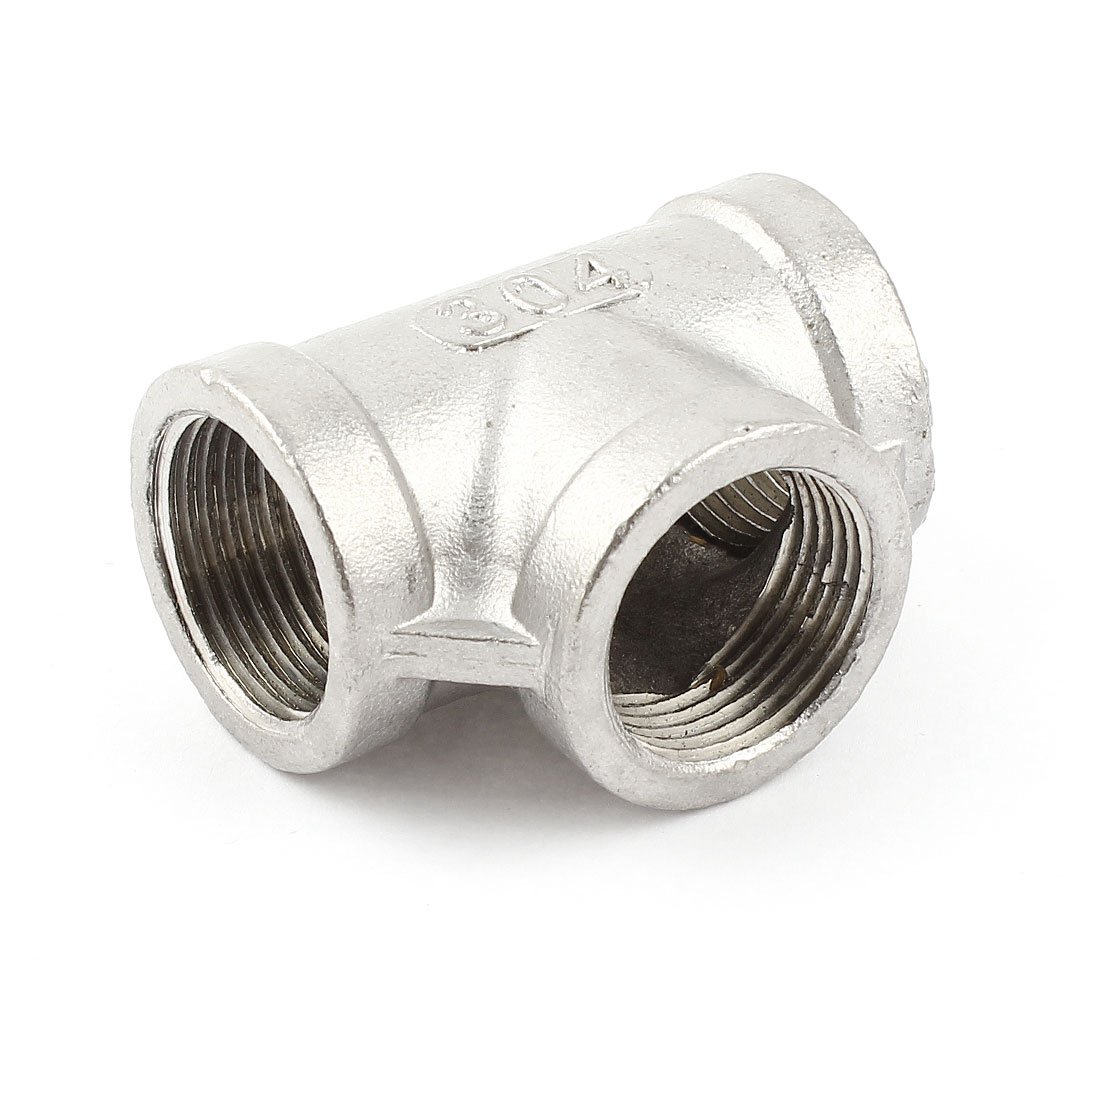 3/4BSPP Female Thread T Type 3 Way Full Port Stainless Steel Pipe Connector Quick Fitting